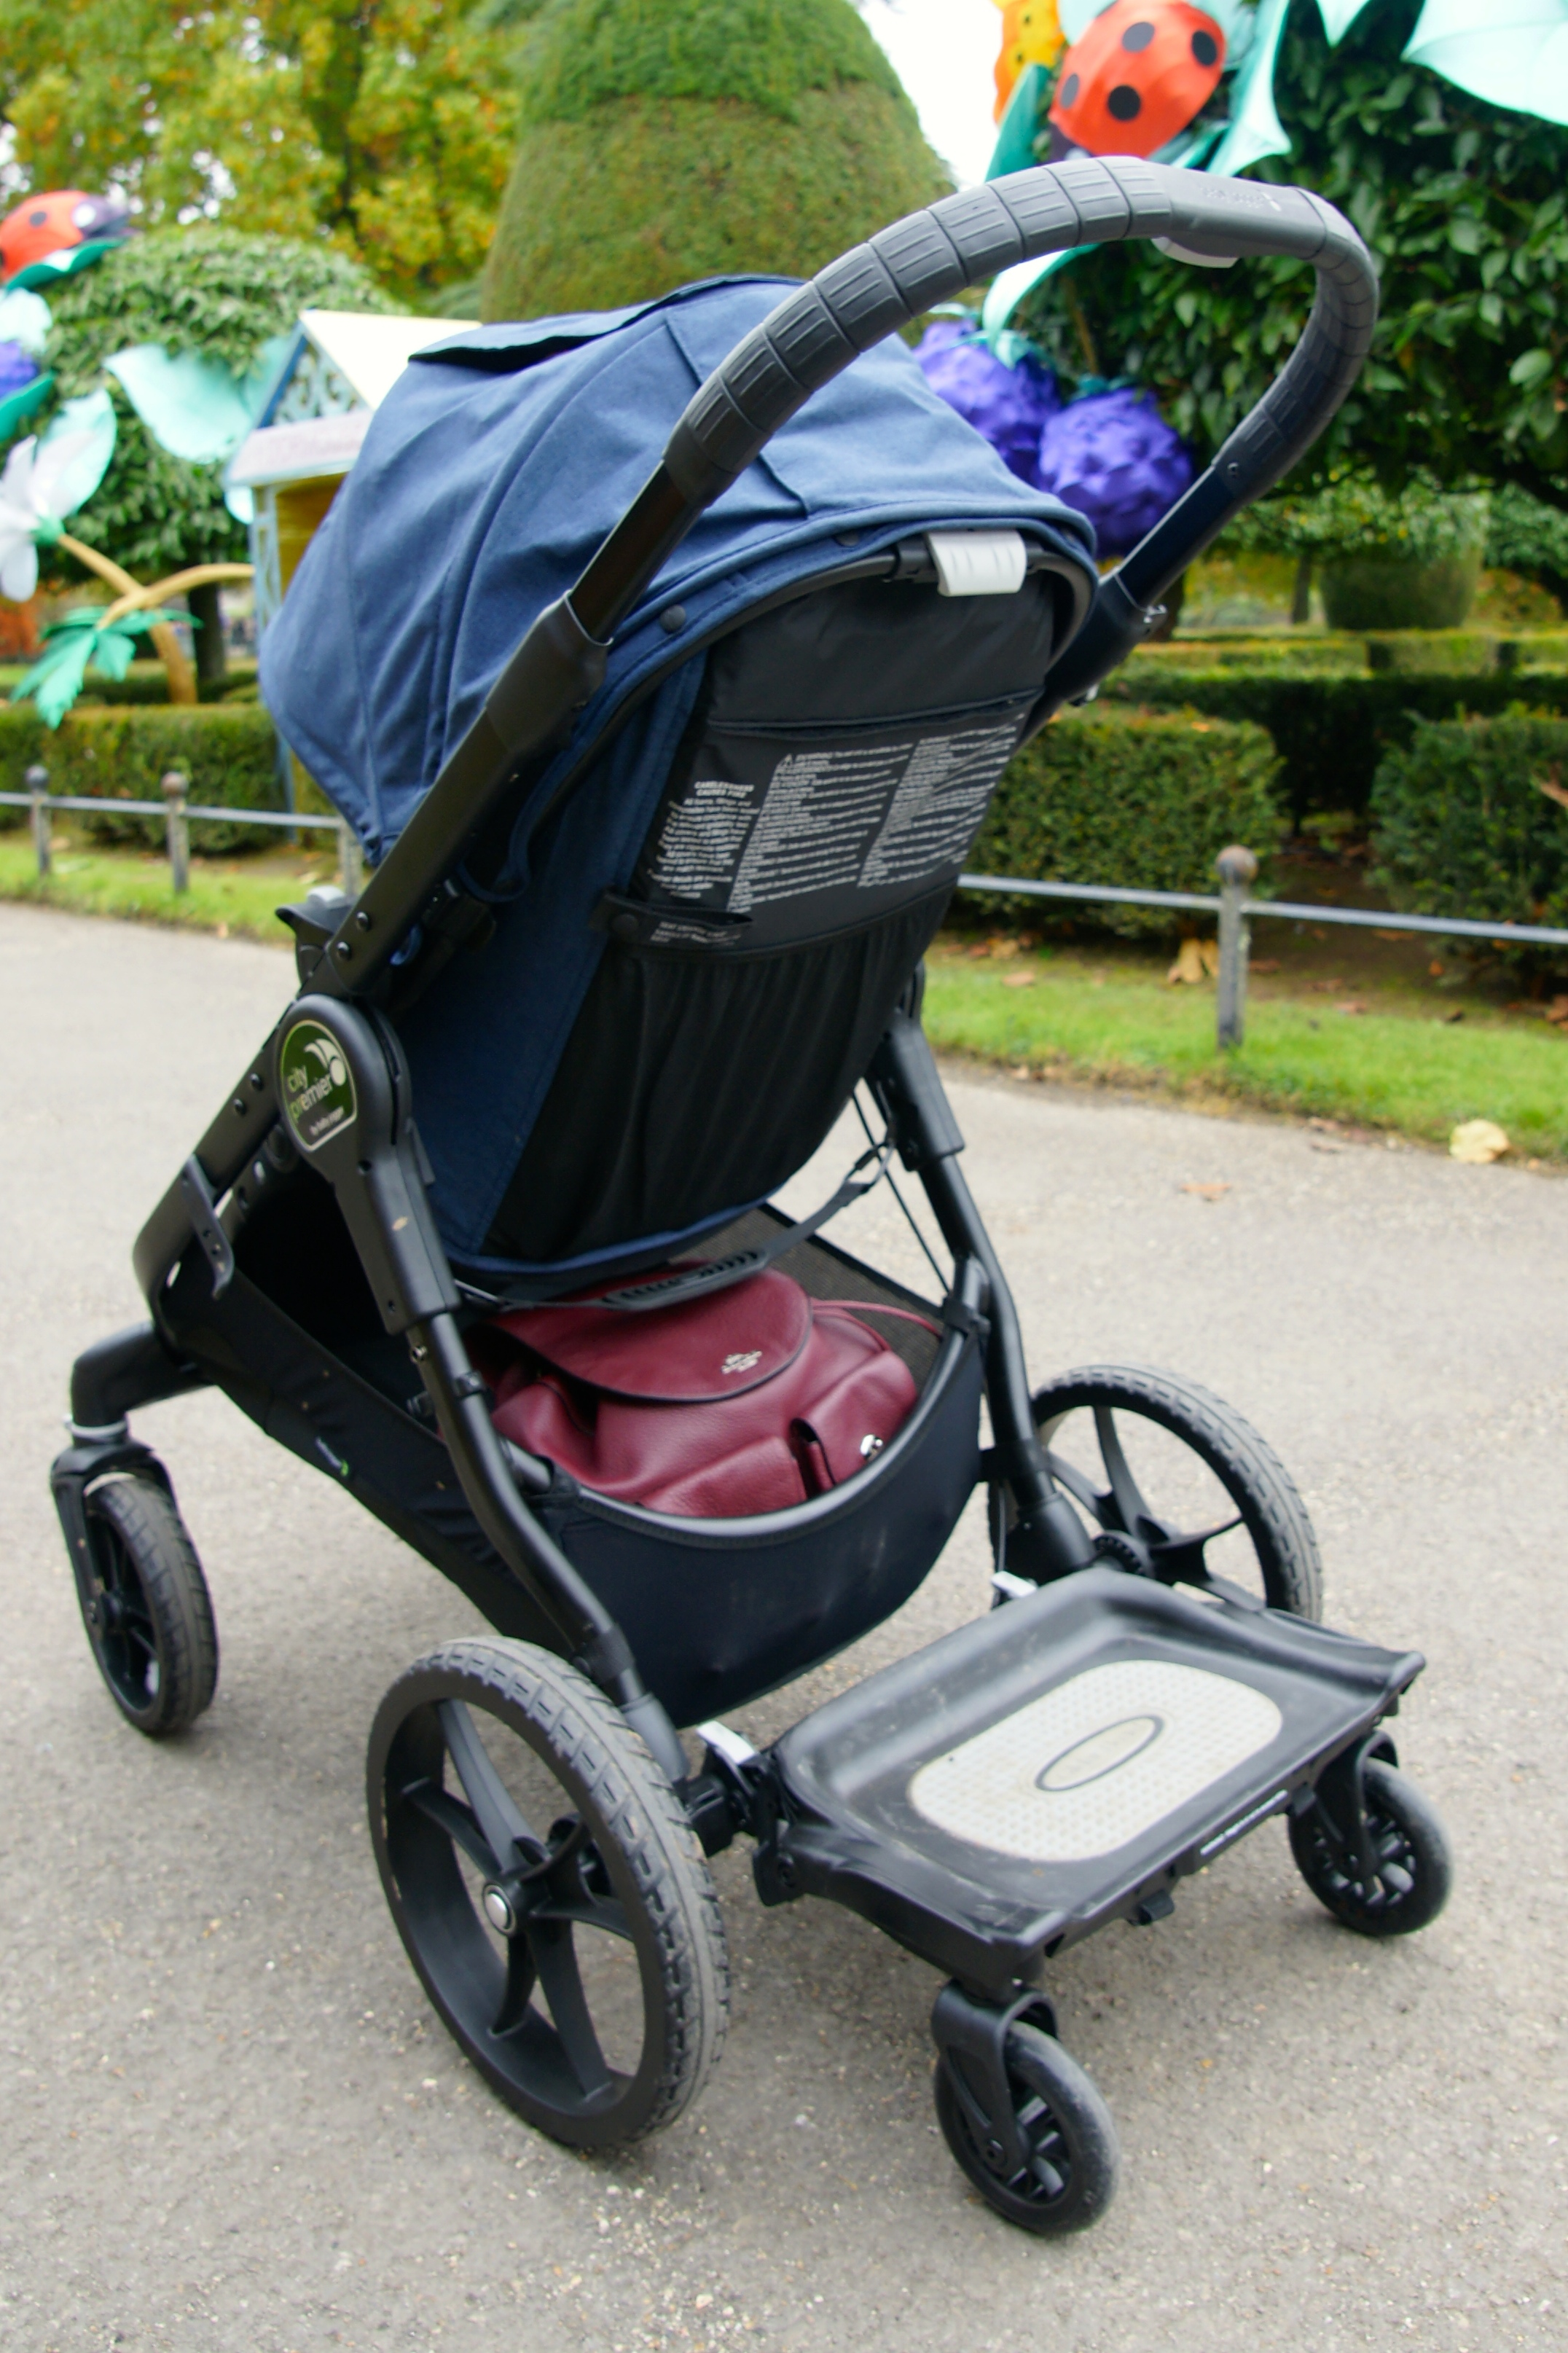 Review City Premier By Baby Jogger Scarlett And Me